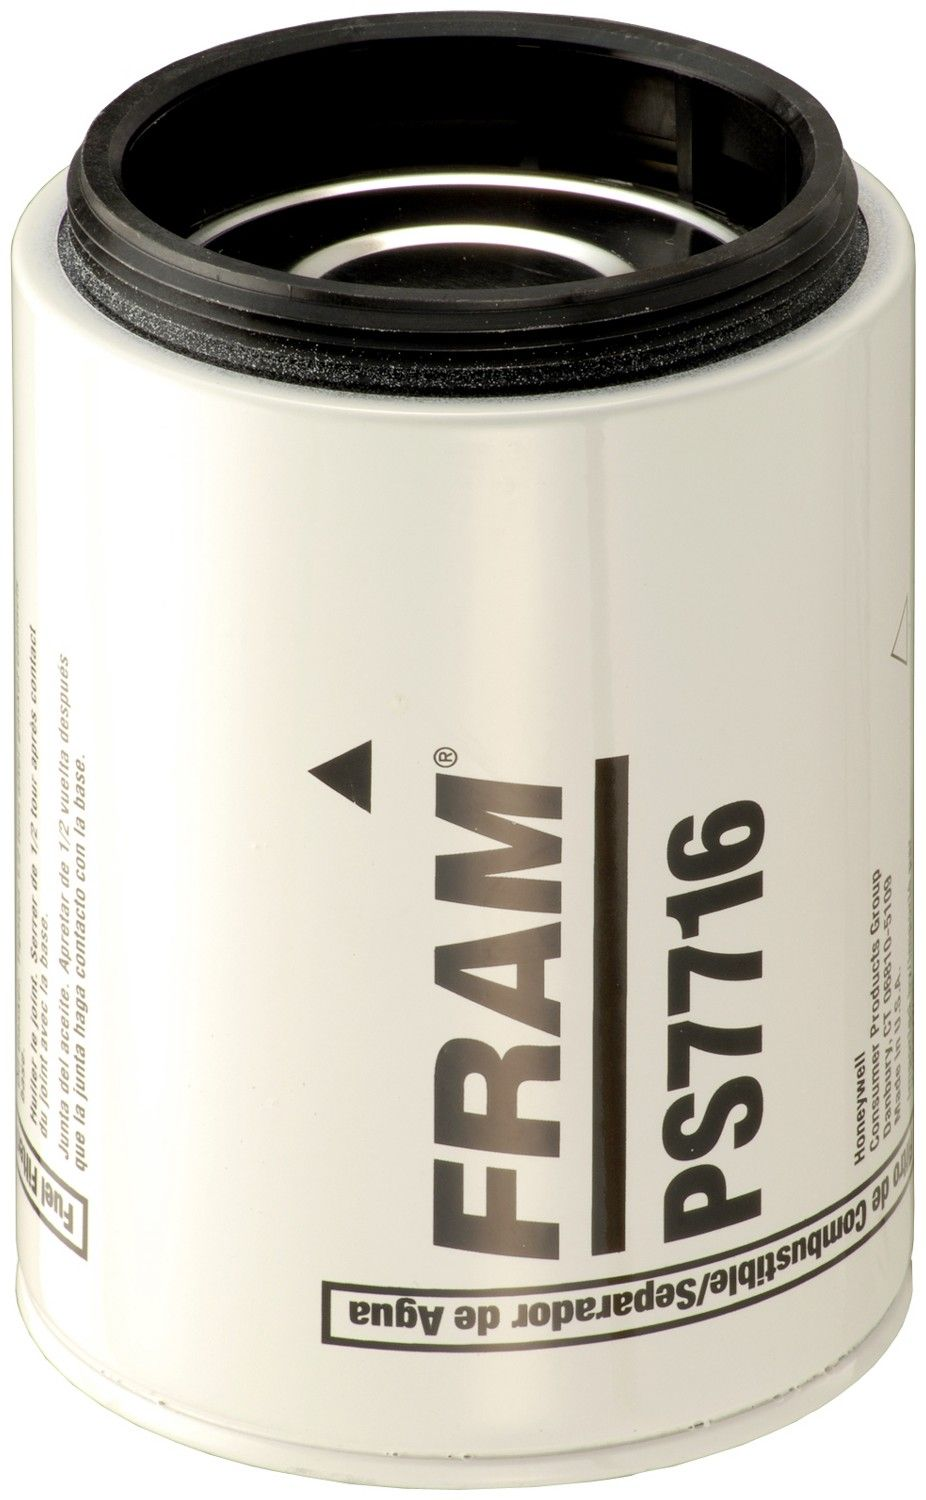 2003 hino fd2320 fuel filter (fram ps7716) at tank hd fuel water separator  spin-on filter use with sediment bowl, not included